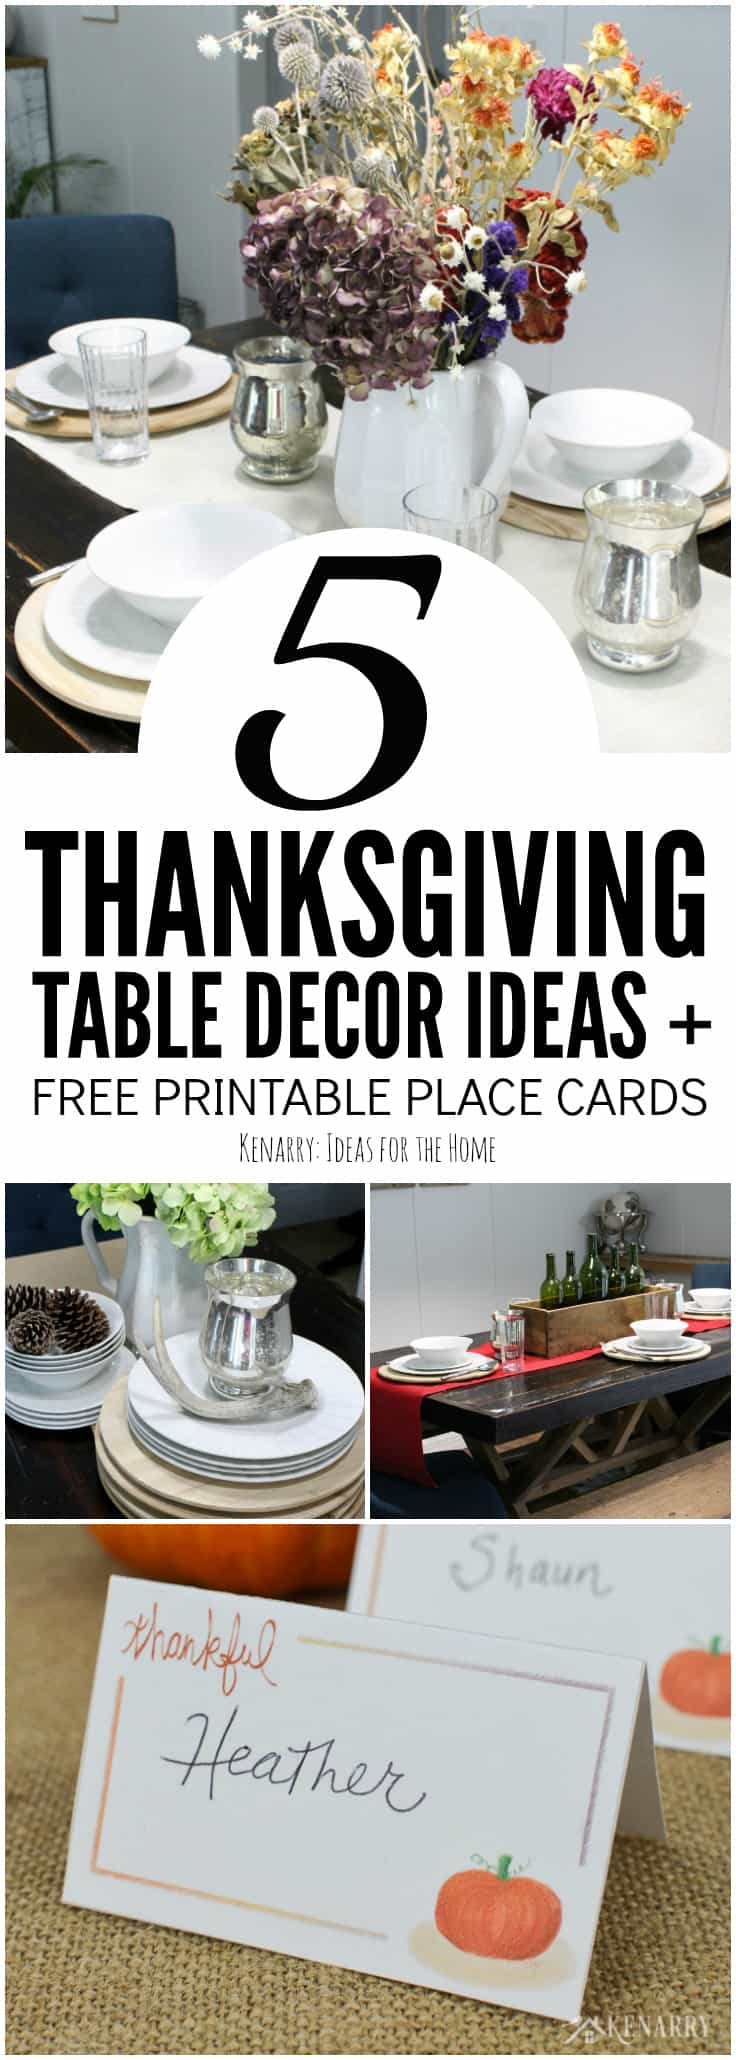 Thanksgiving table decor can be super easy with rustic farmhouse style touches like a burlap table runner. Use these 5 simple yet stylish ideas and tips along with free printable place cards to create a holiday dinner your family will enjoy.